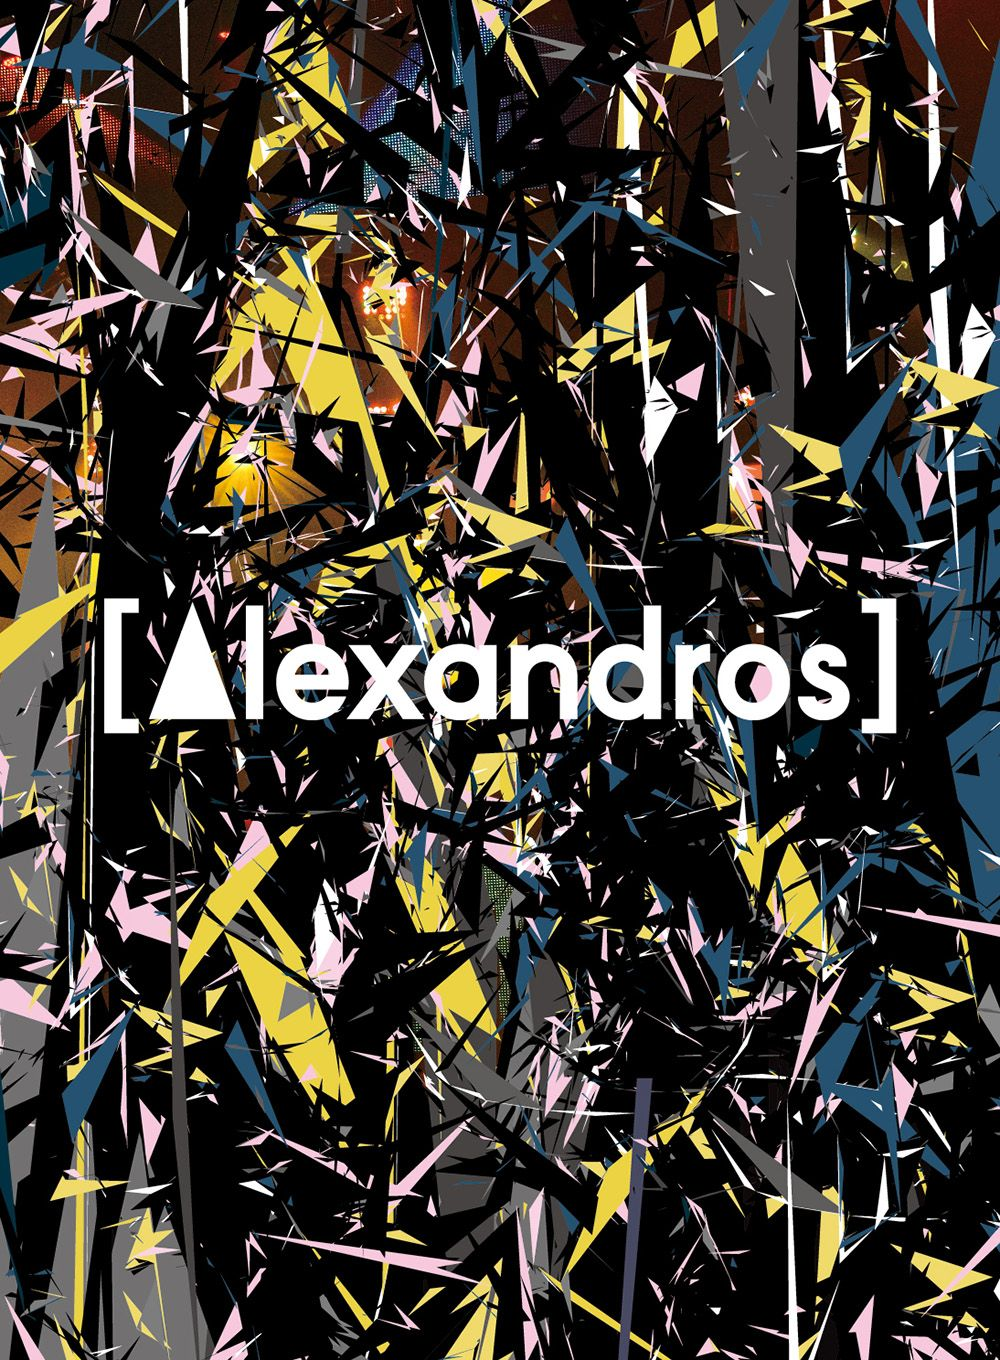 Alexandros Halloween Official Web Site 壁紙 Iphone壁紙 白井眞輝